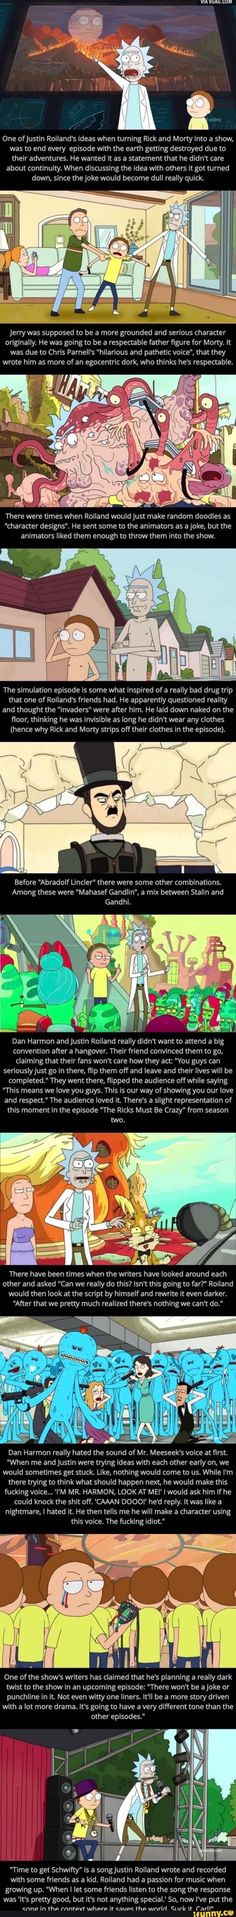 Ricky And Morty, Wubba Lubba, Fraggle Rock, Get Schwifty, Fandoms, Por Tv, Best Funny Pictures, Fun Facts, Harry Potter